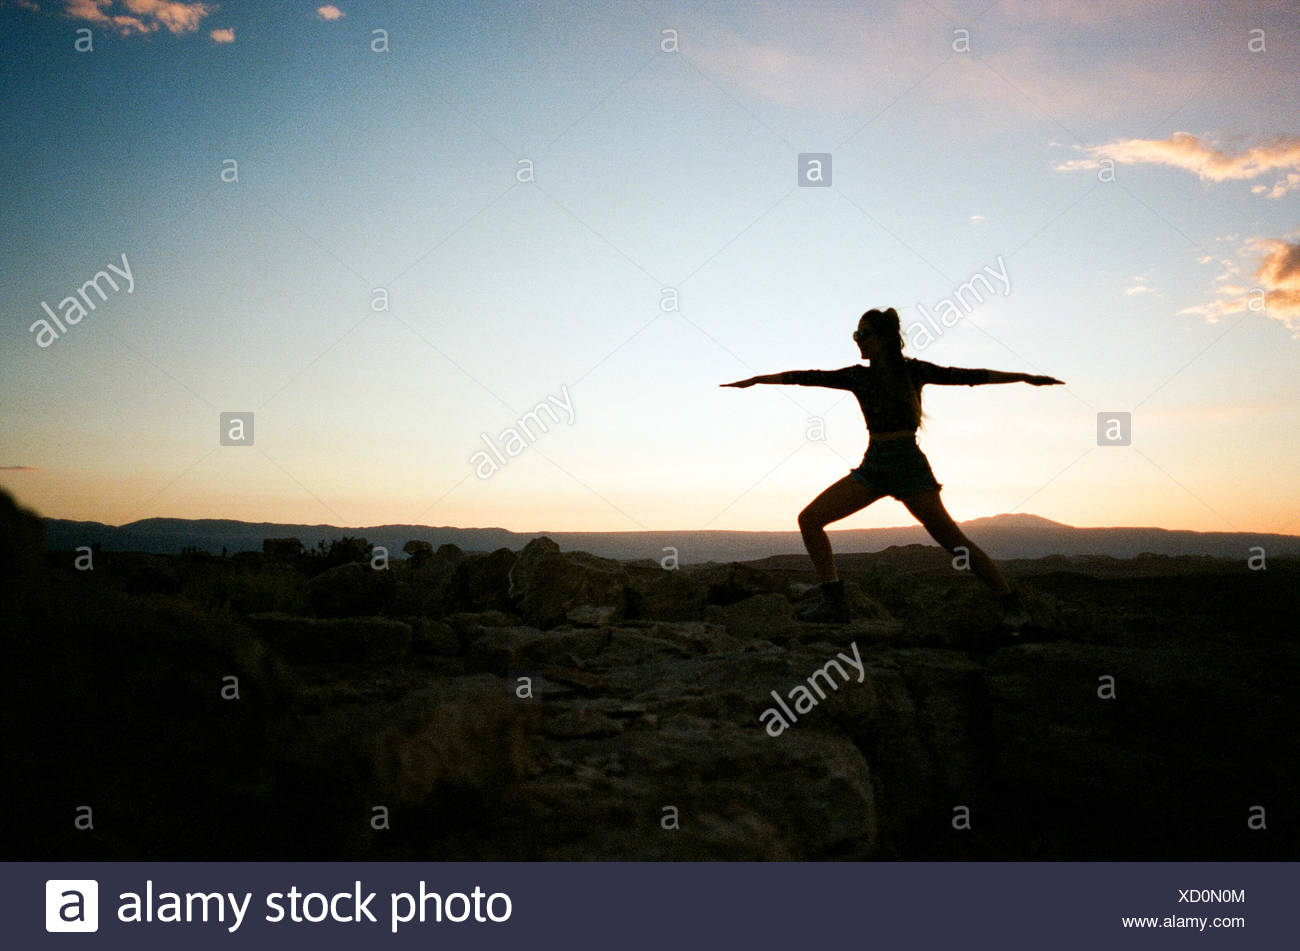 Silhouette of woman in yoga pose Photo Stock